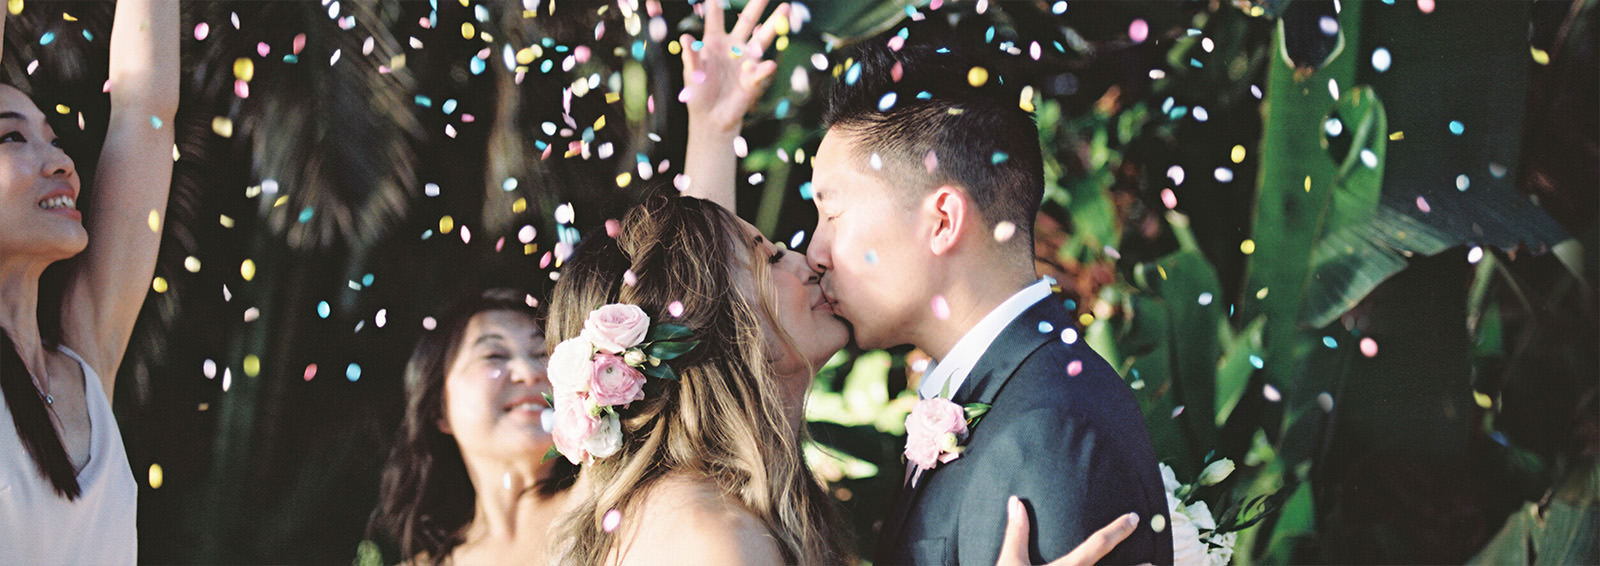 Maui Wedding Planner | Maui's Angels | Home